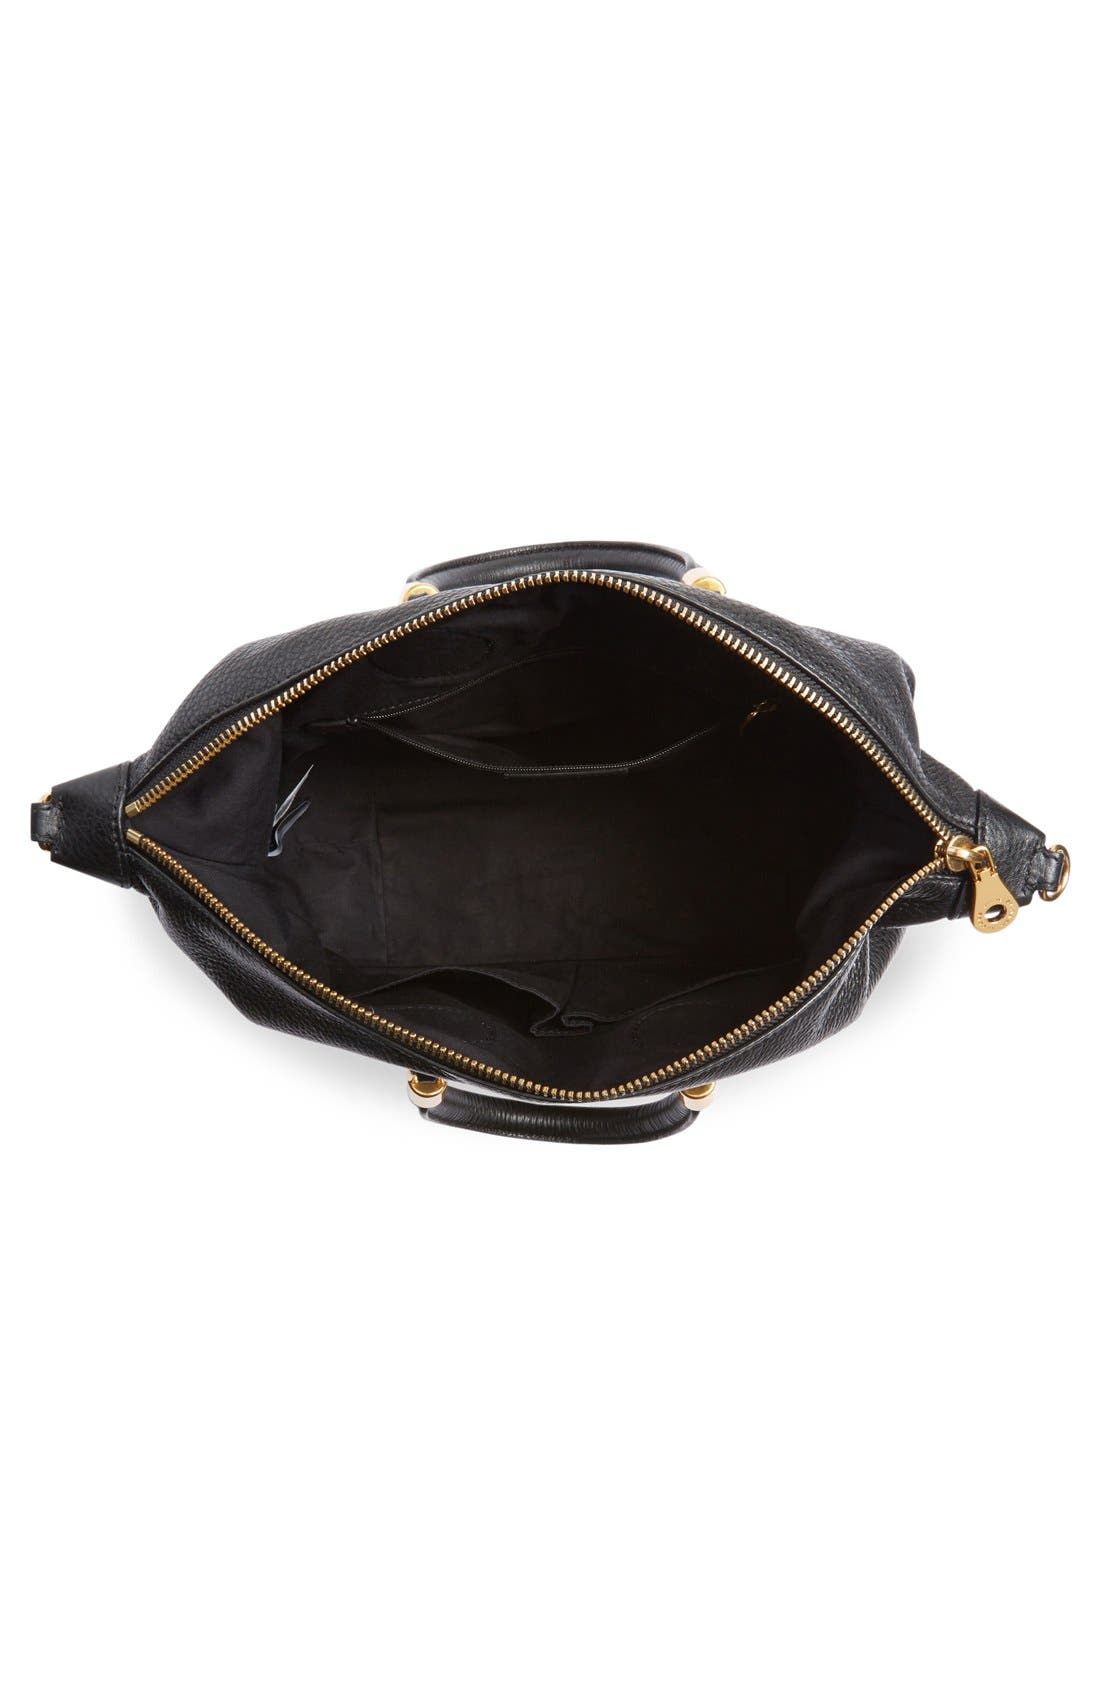 MARC JACOBS, MARC BY MARC JACOBS 'New Too Hot to Handle' Leather Satchel, Alternate thumbnail 2, color, 001